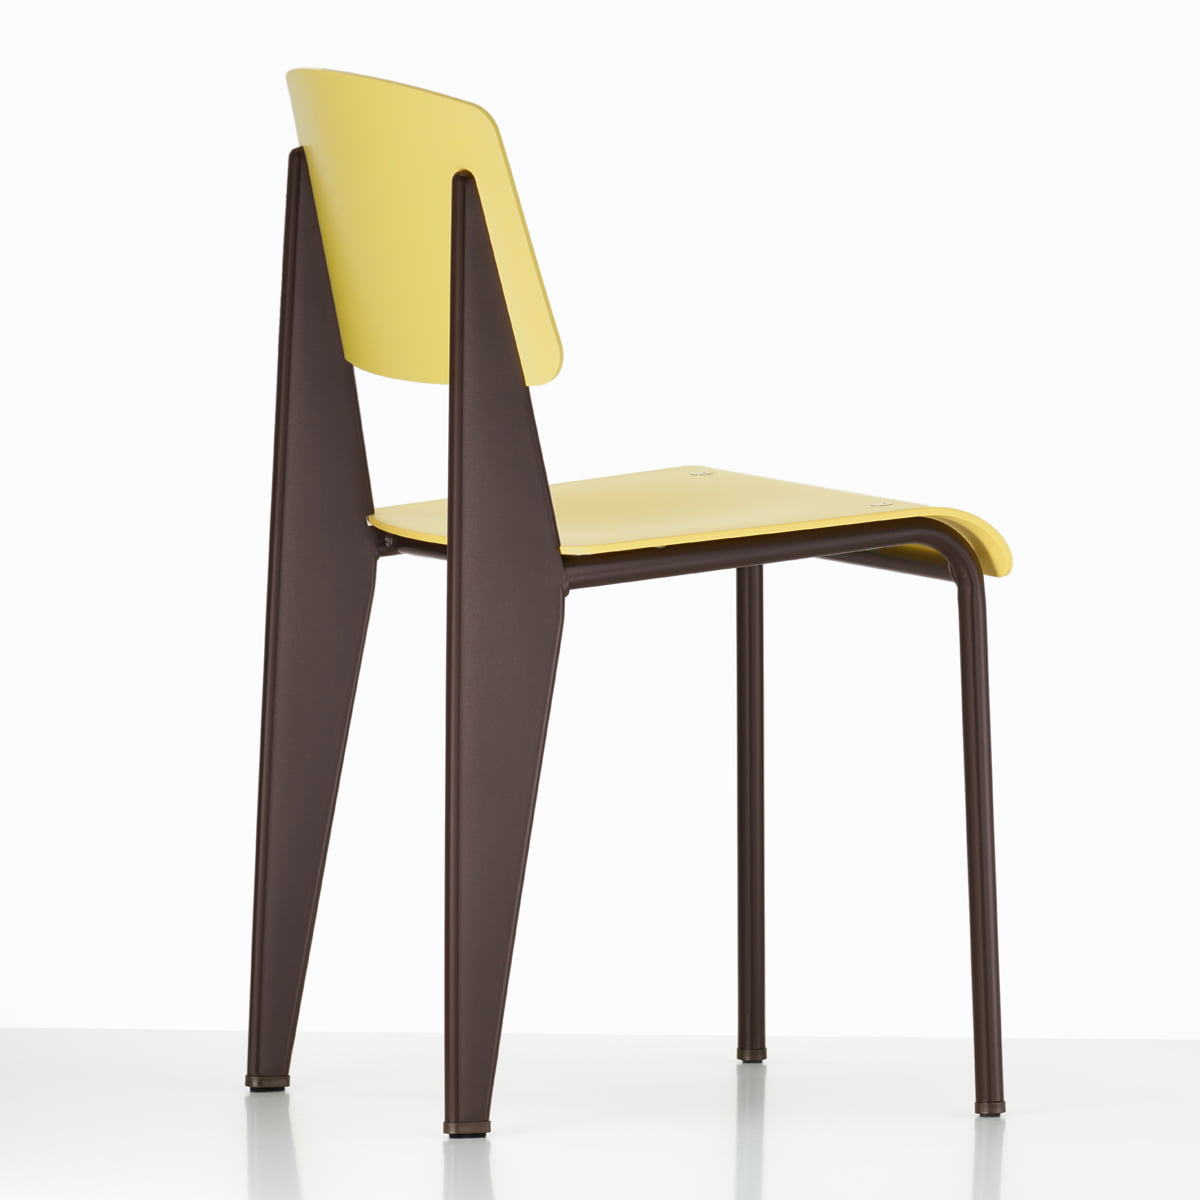 Beau Vitra   Prouvé Standard SP Chair, Citron   Back